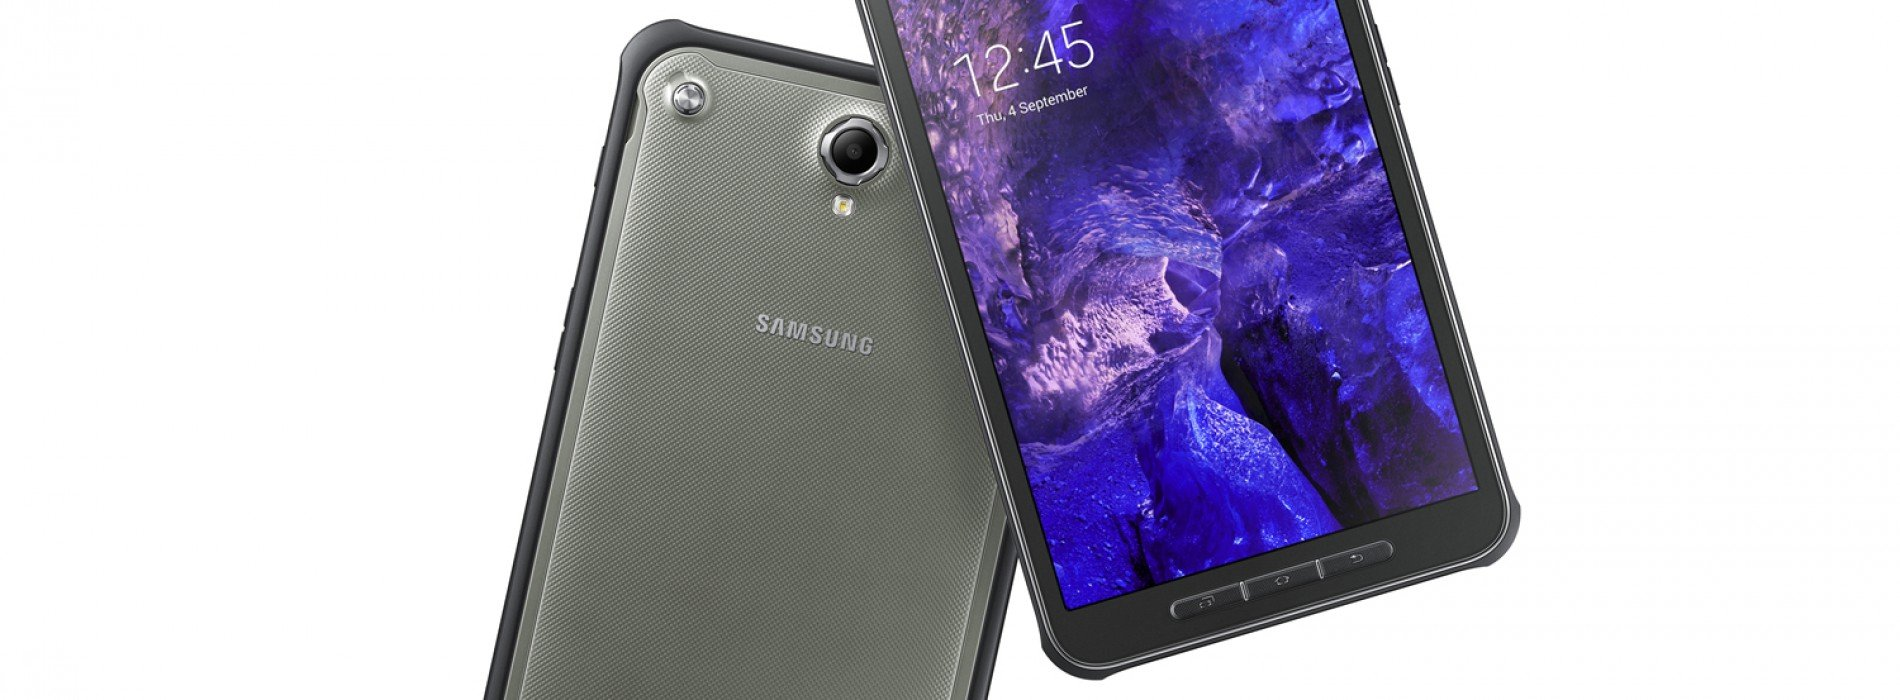 Samsung announces new ruggedized tablet, the Galaxy Tab Active